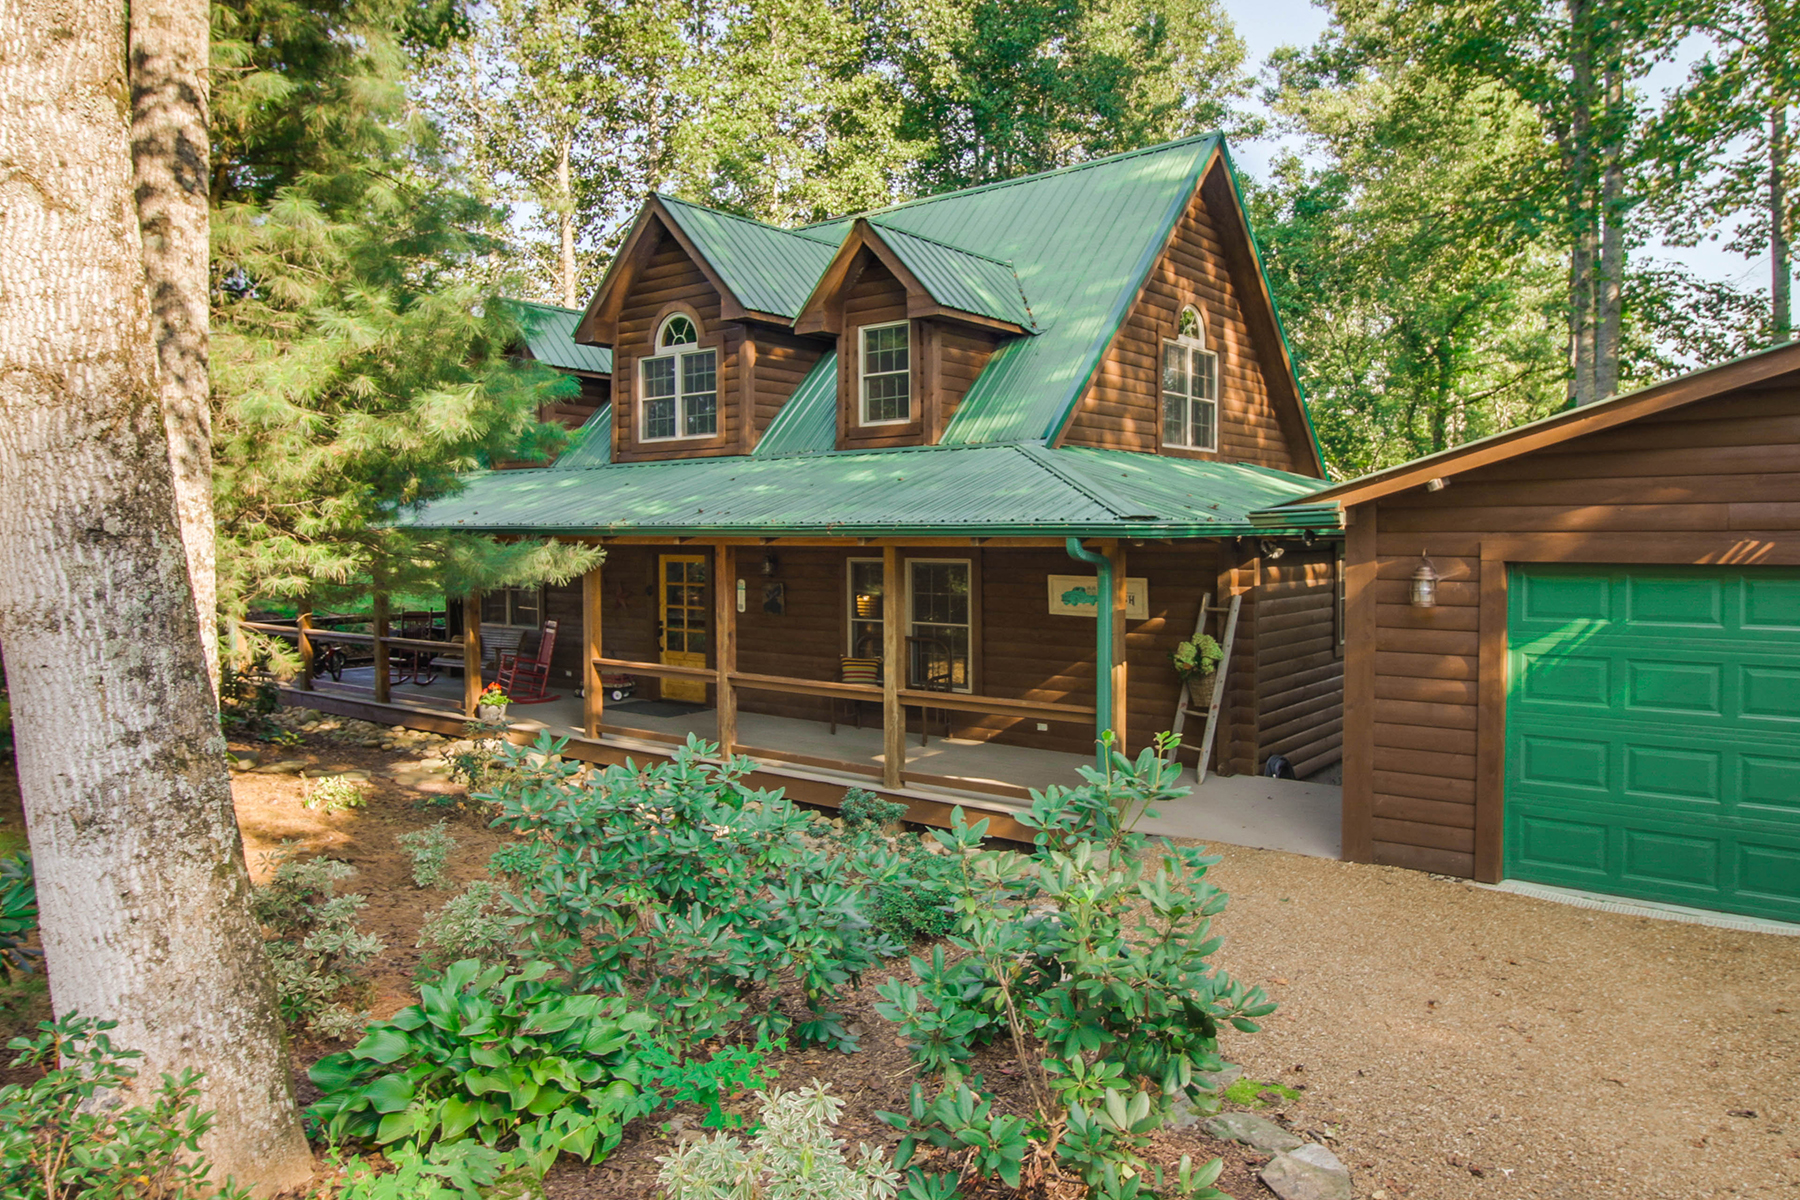 Single Family Home for Sale at OLETA FALLS 107 Stone Valley Way Hendersonville, North Carolina, 28792 United States